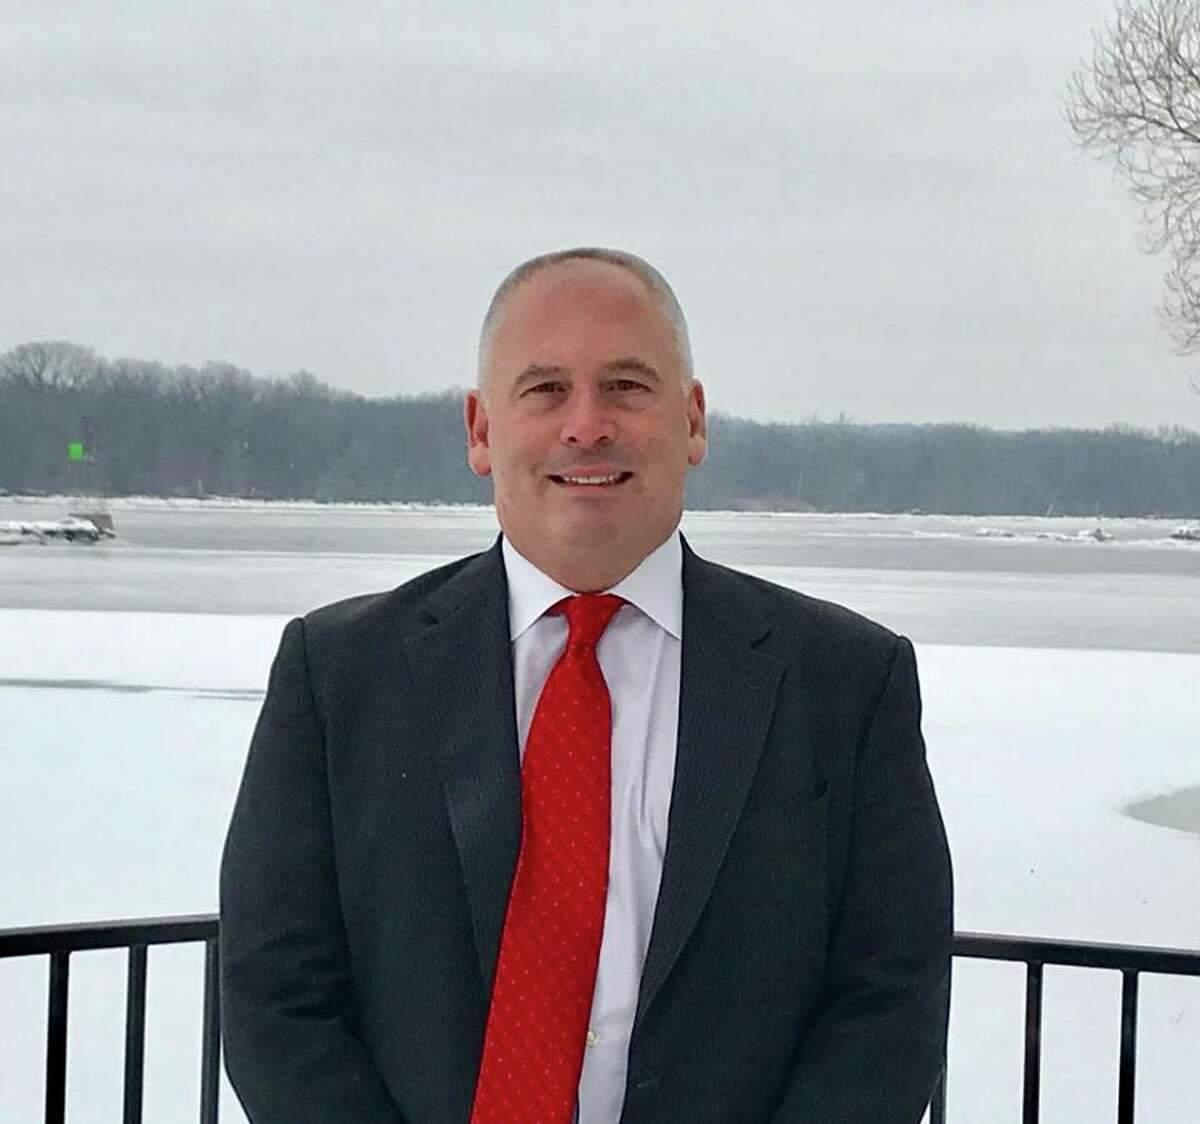 Attorney George McHugh is running for Coeymans Town Supervisor in 2019 on the Republican and Conservative lines. McHugh, the former general counsel for Carver Companies, is still a realtor for the port owner in South Carolina, where McHugh's son also runs Carver Maritime. But McHugh says he will not show favor to the port and its expanding business interests if elected.